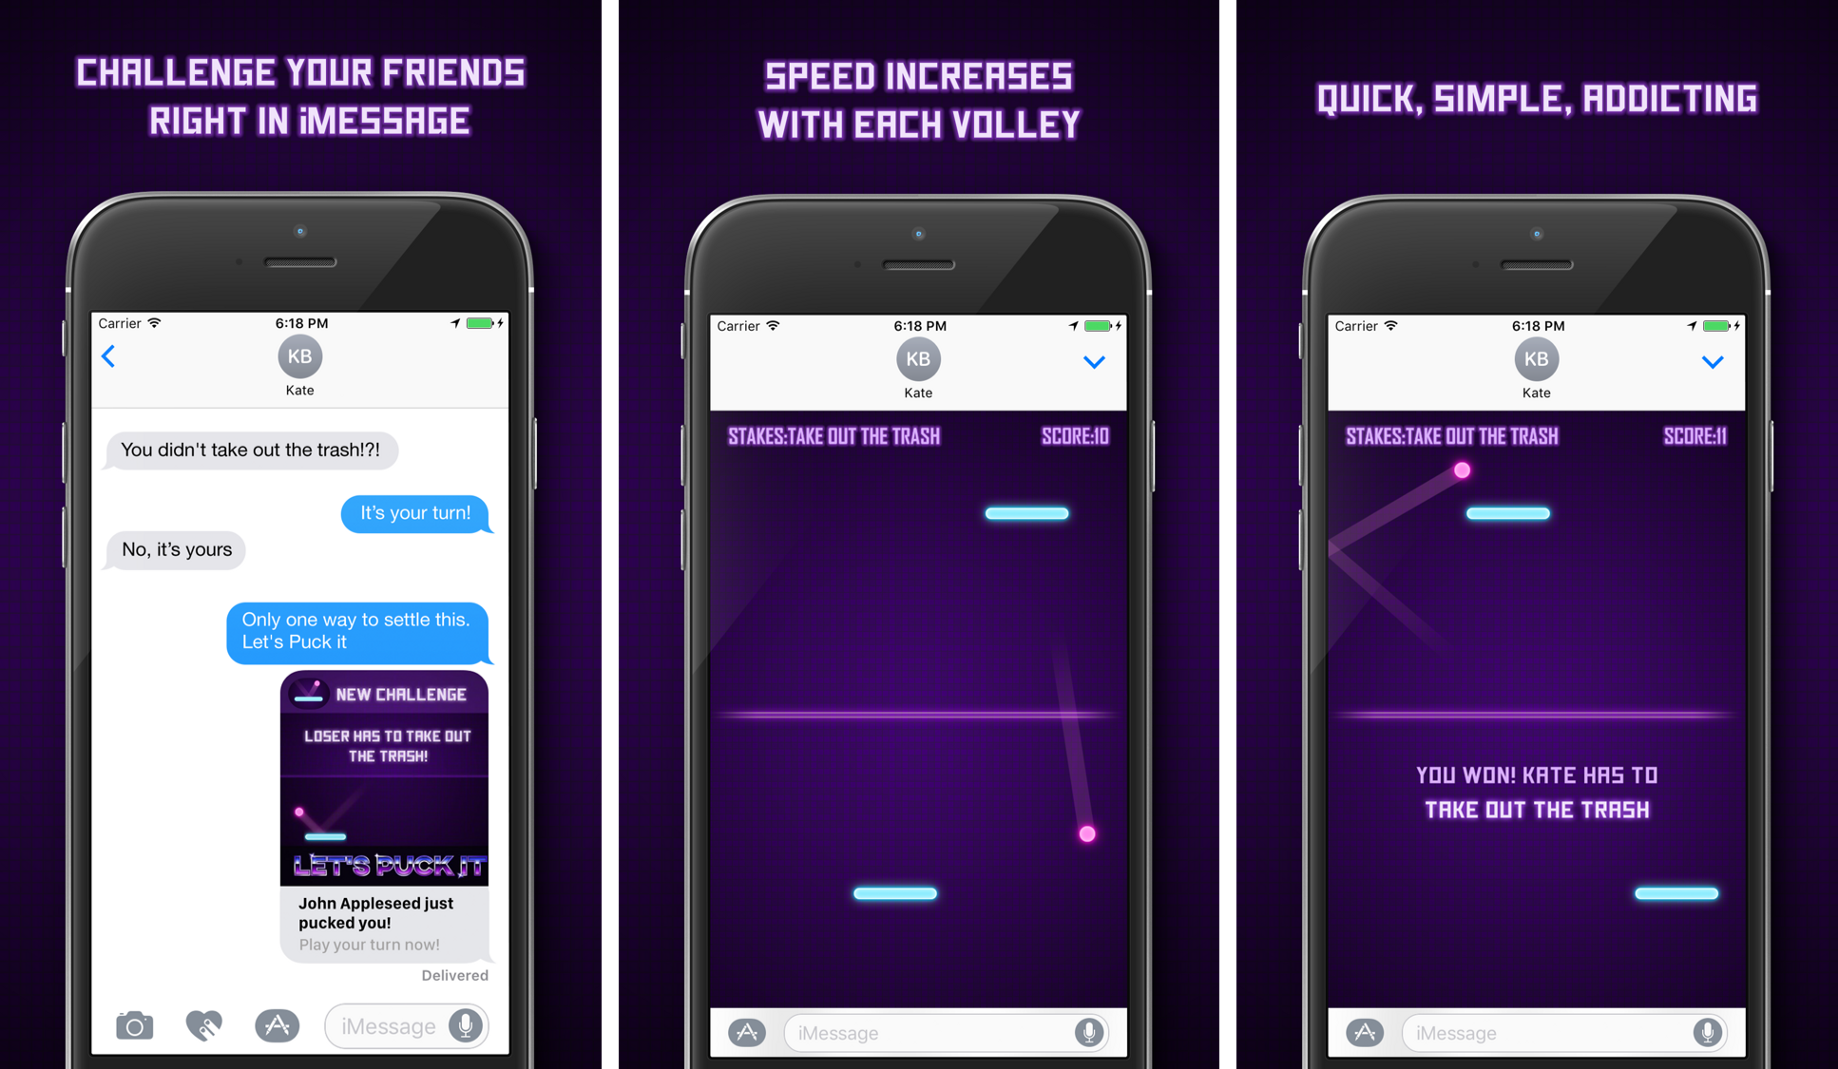 """iMessage app """"Let's Puck It!"""" has over 1 Million players doing"""